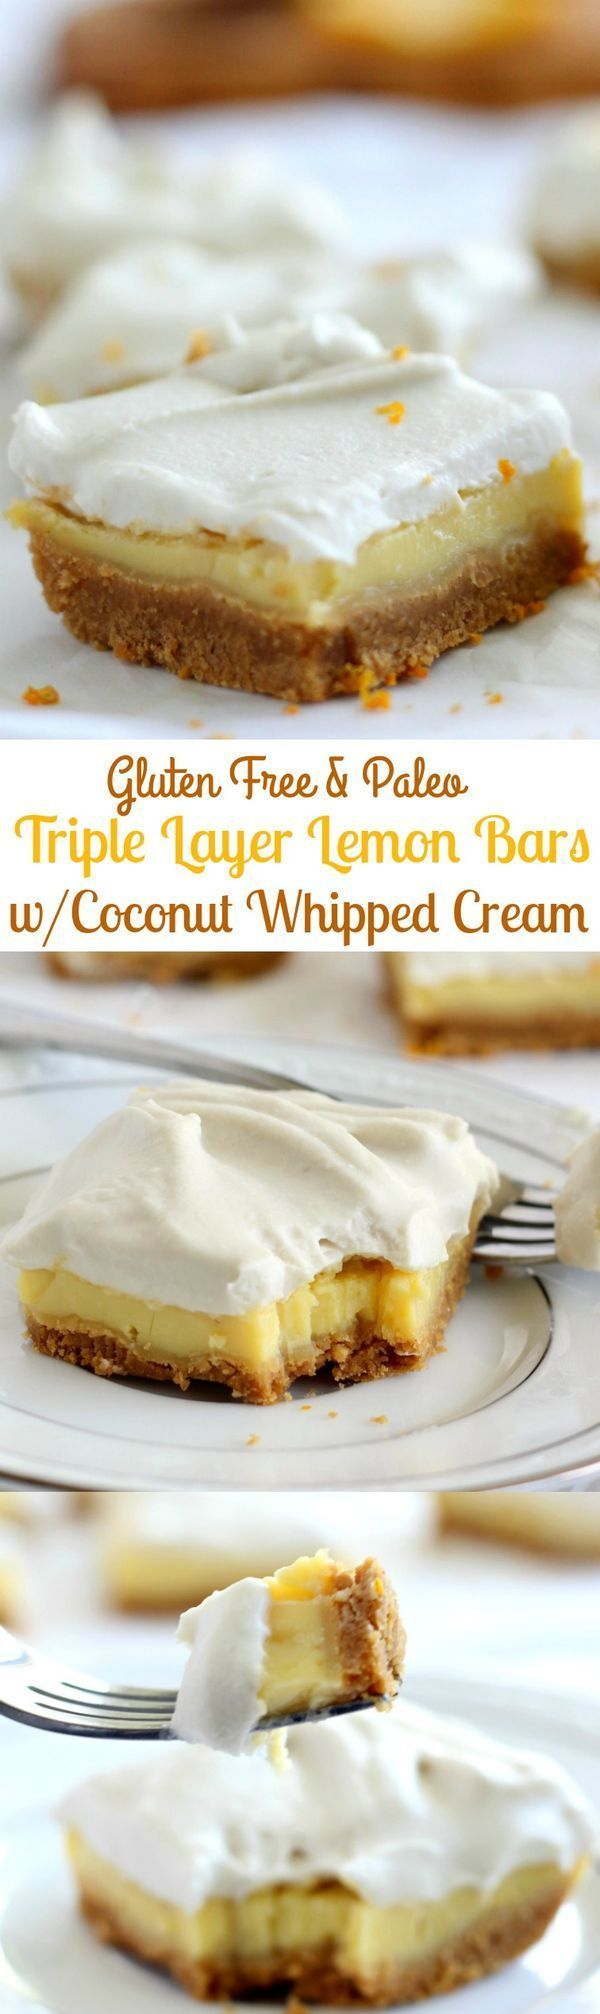 Triple Layer Paleo Lemon Bars that are gluten free, dairy free, Paleo - topped with easy coconut whipped cream - these bars are a dream!